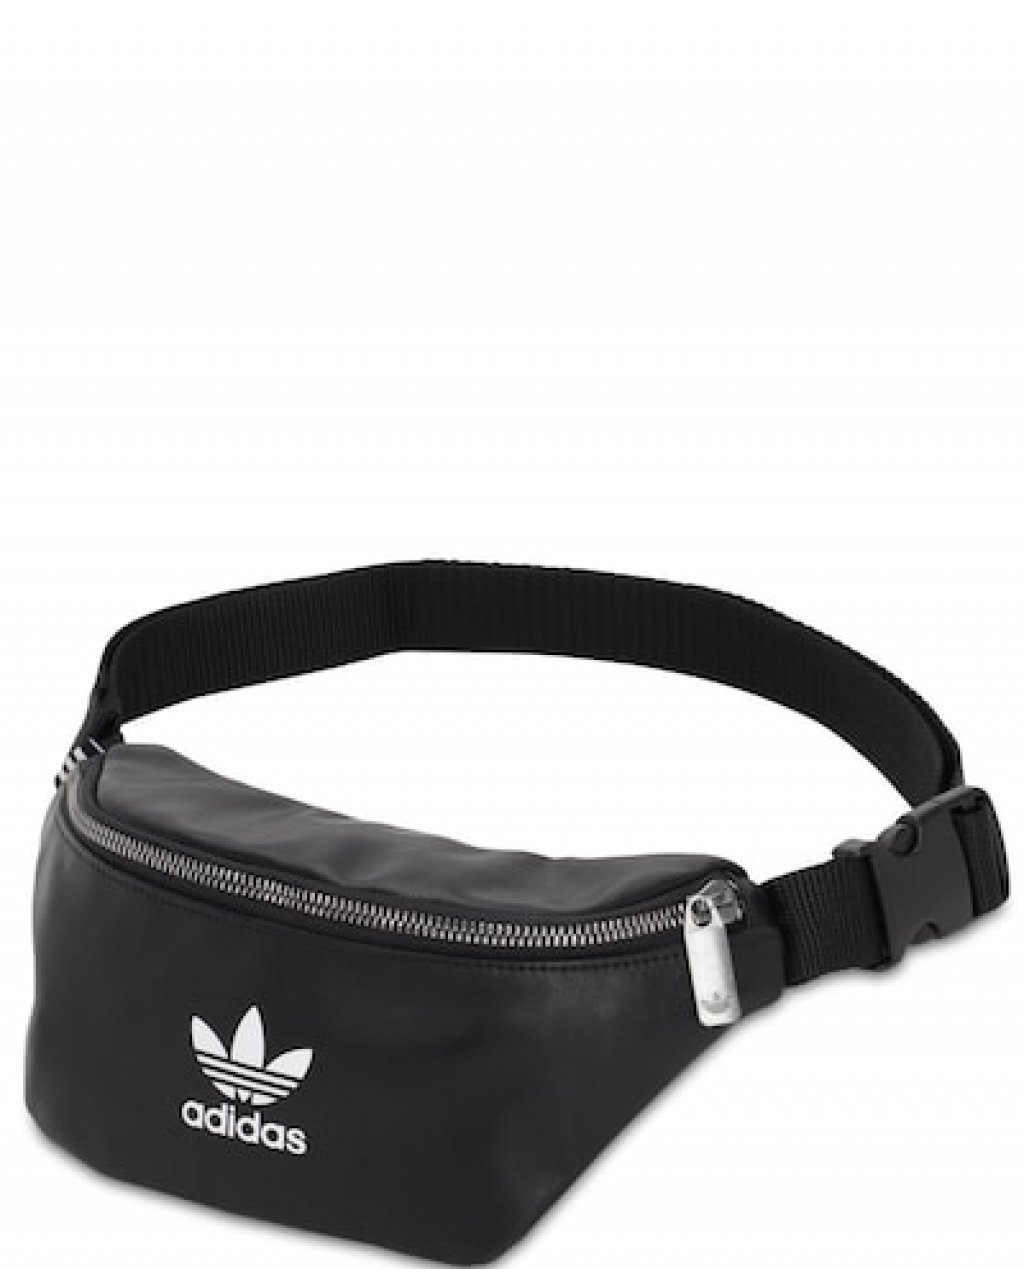 adidas Originals Faux Leather Belt Bag